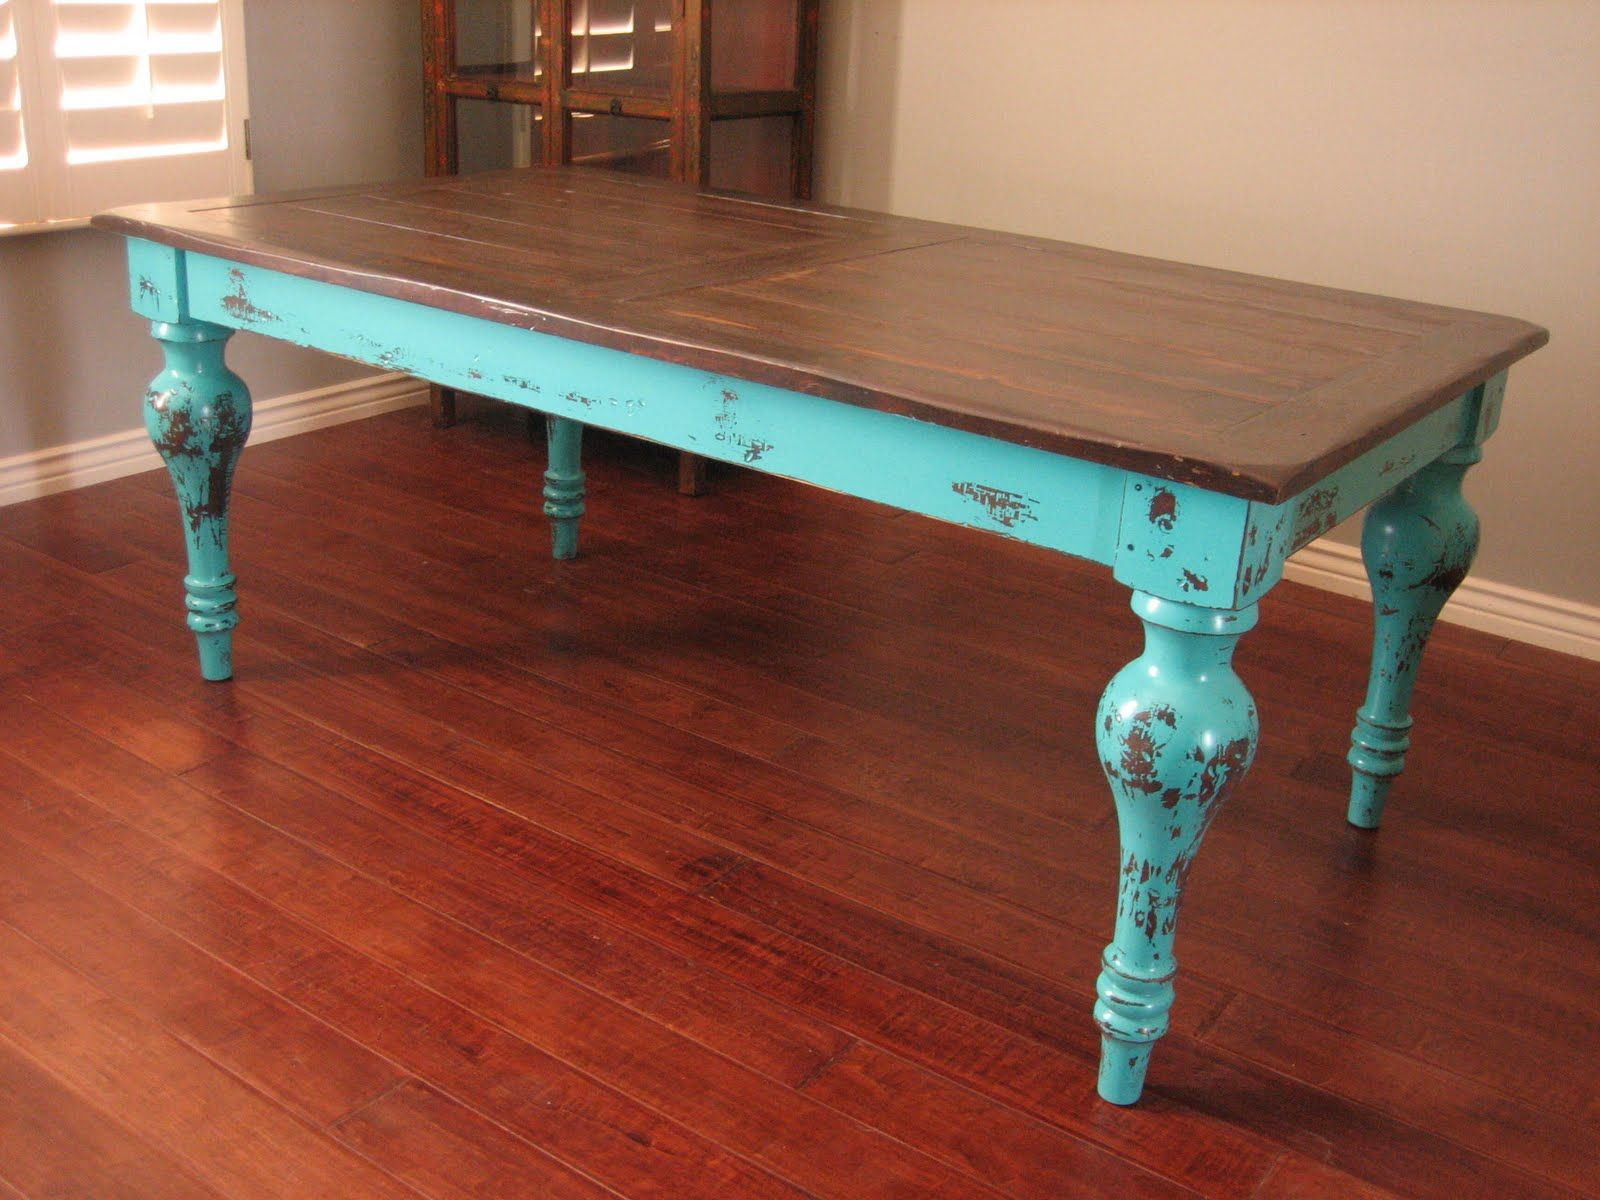 Small Rectangle Shape Shabby Chic Dining Table With Brown On Top Feat Soft Blue For Legs